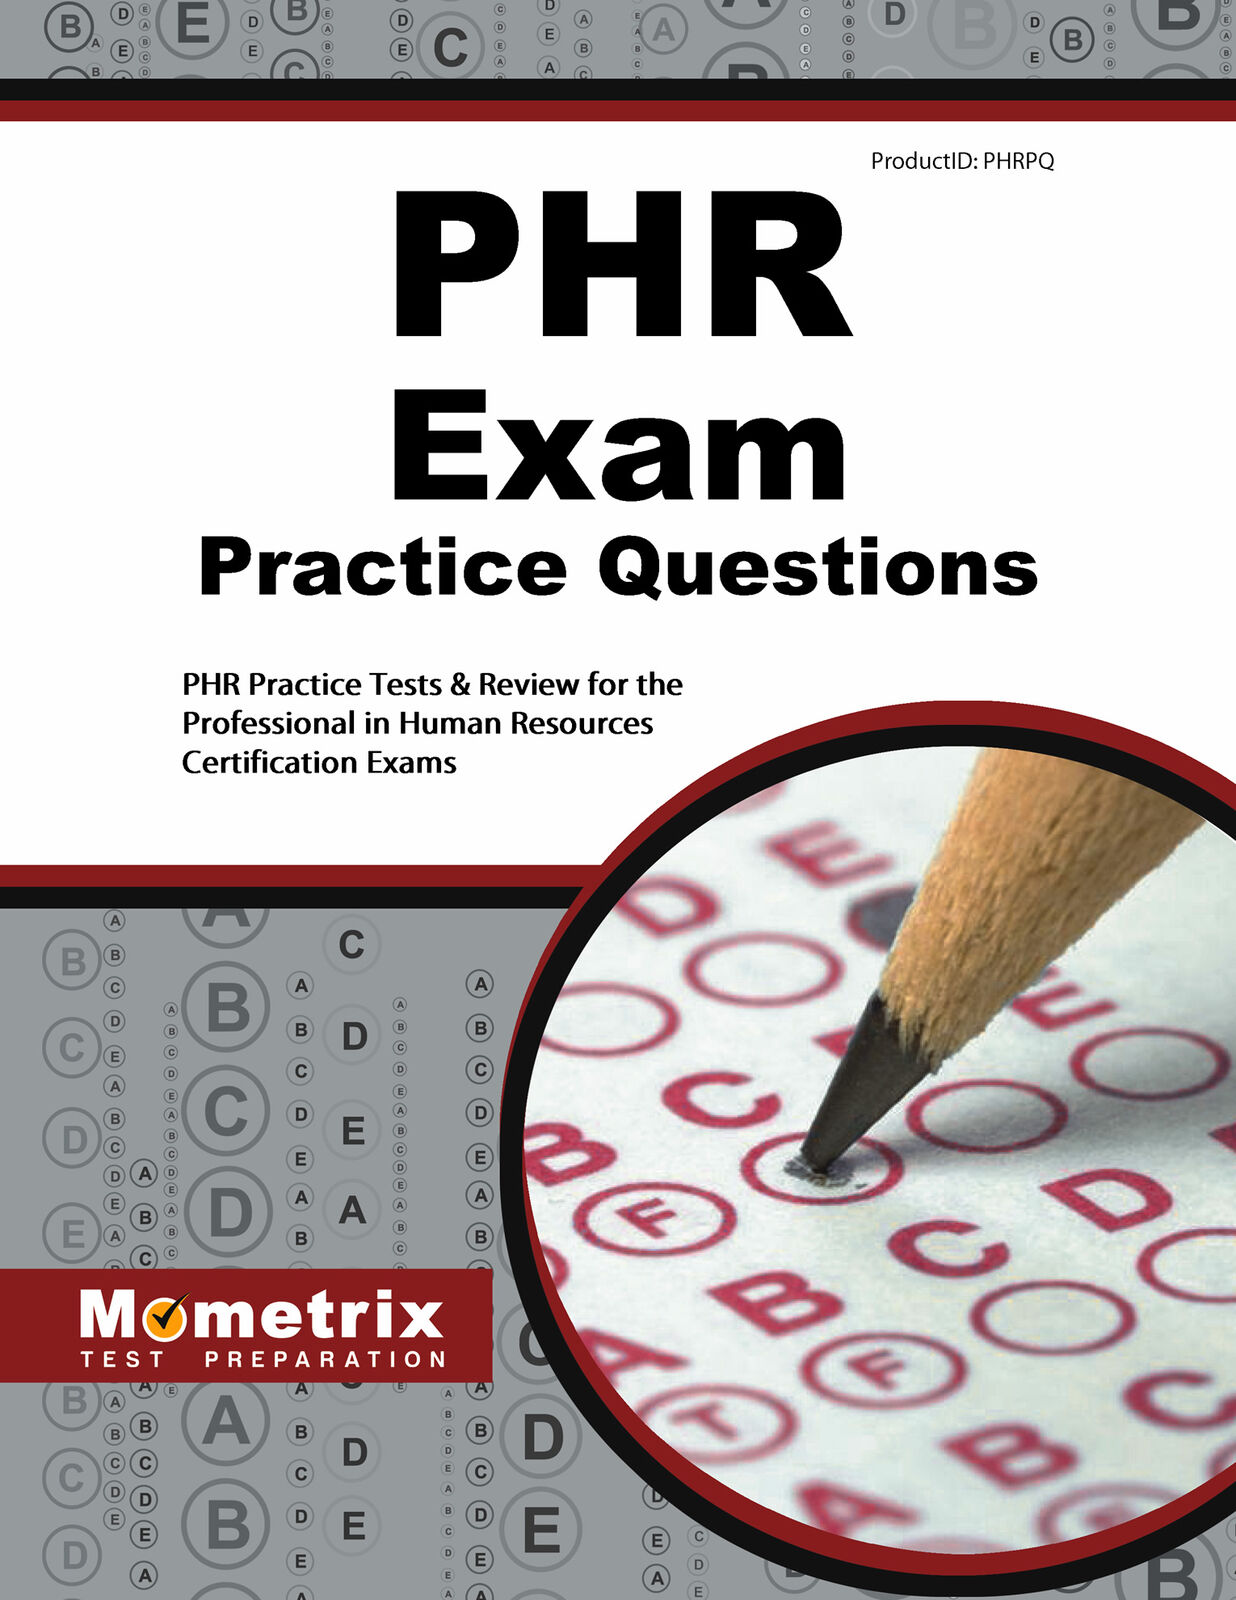 Phr exam practice questions phr practice tests and review for picture 1 of 1 1betcityfo Image collections